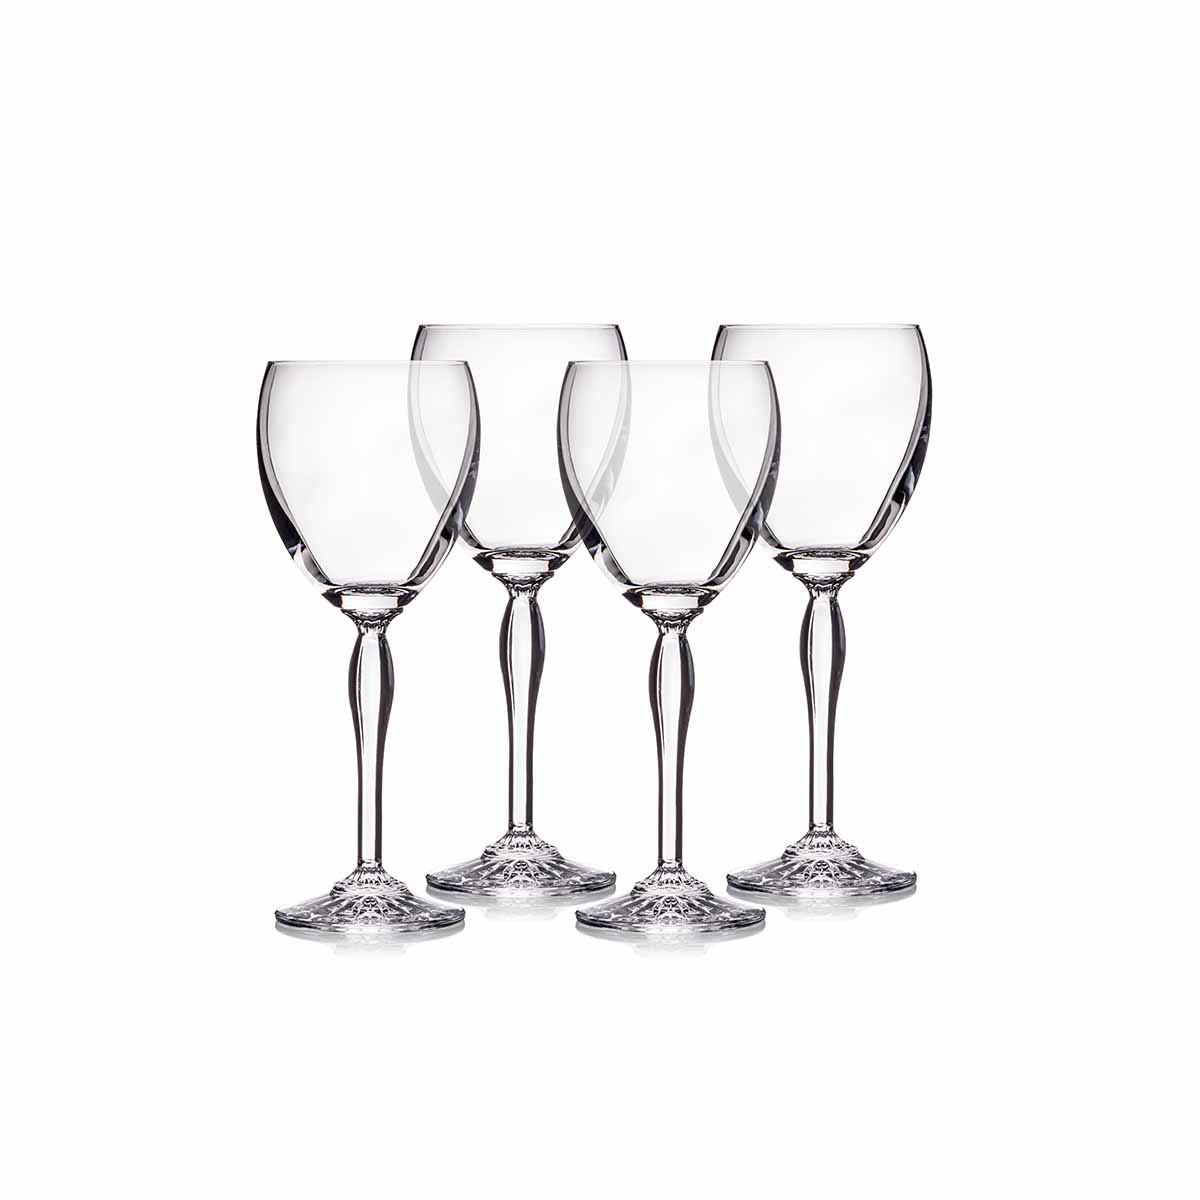 Marquis by Waterford Crystal, Ventura All Purpose Crystal Wine, Set of 4